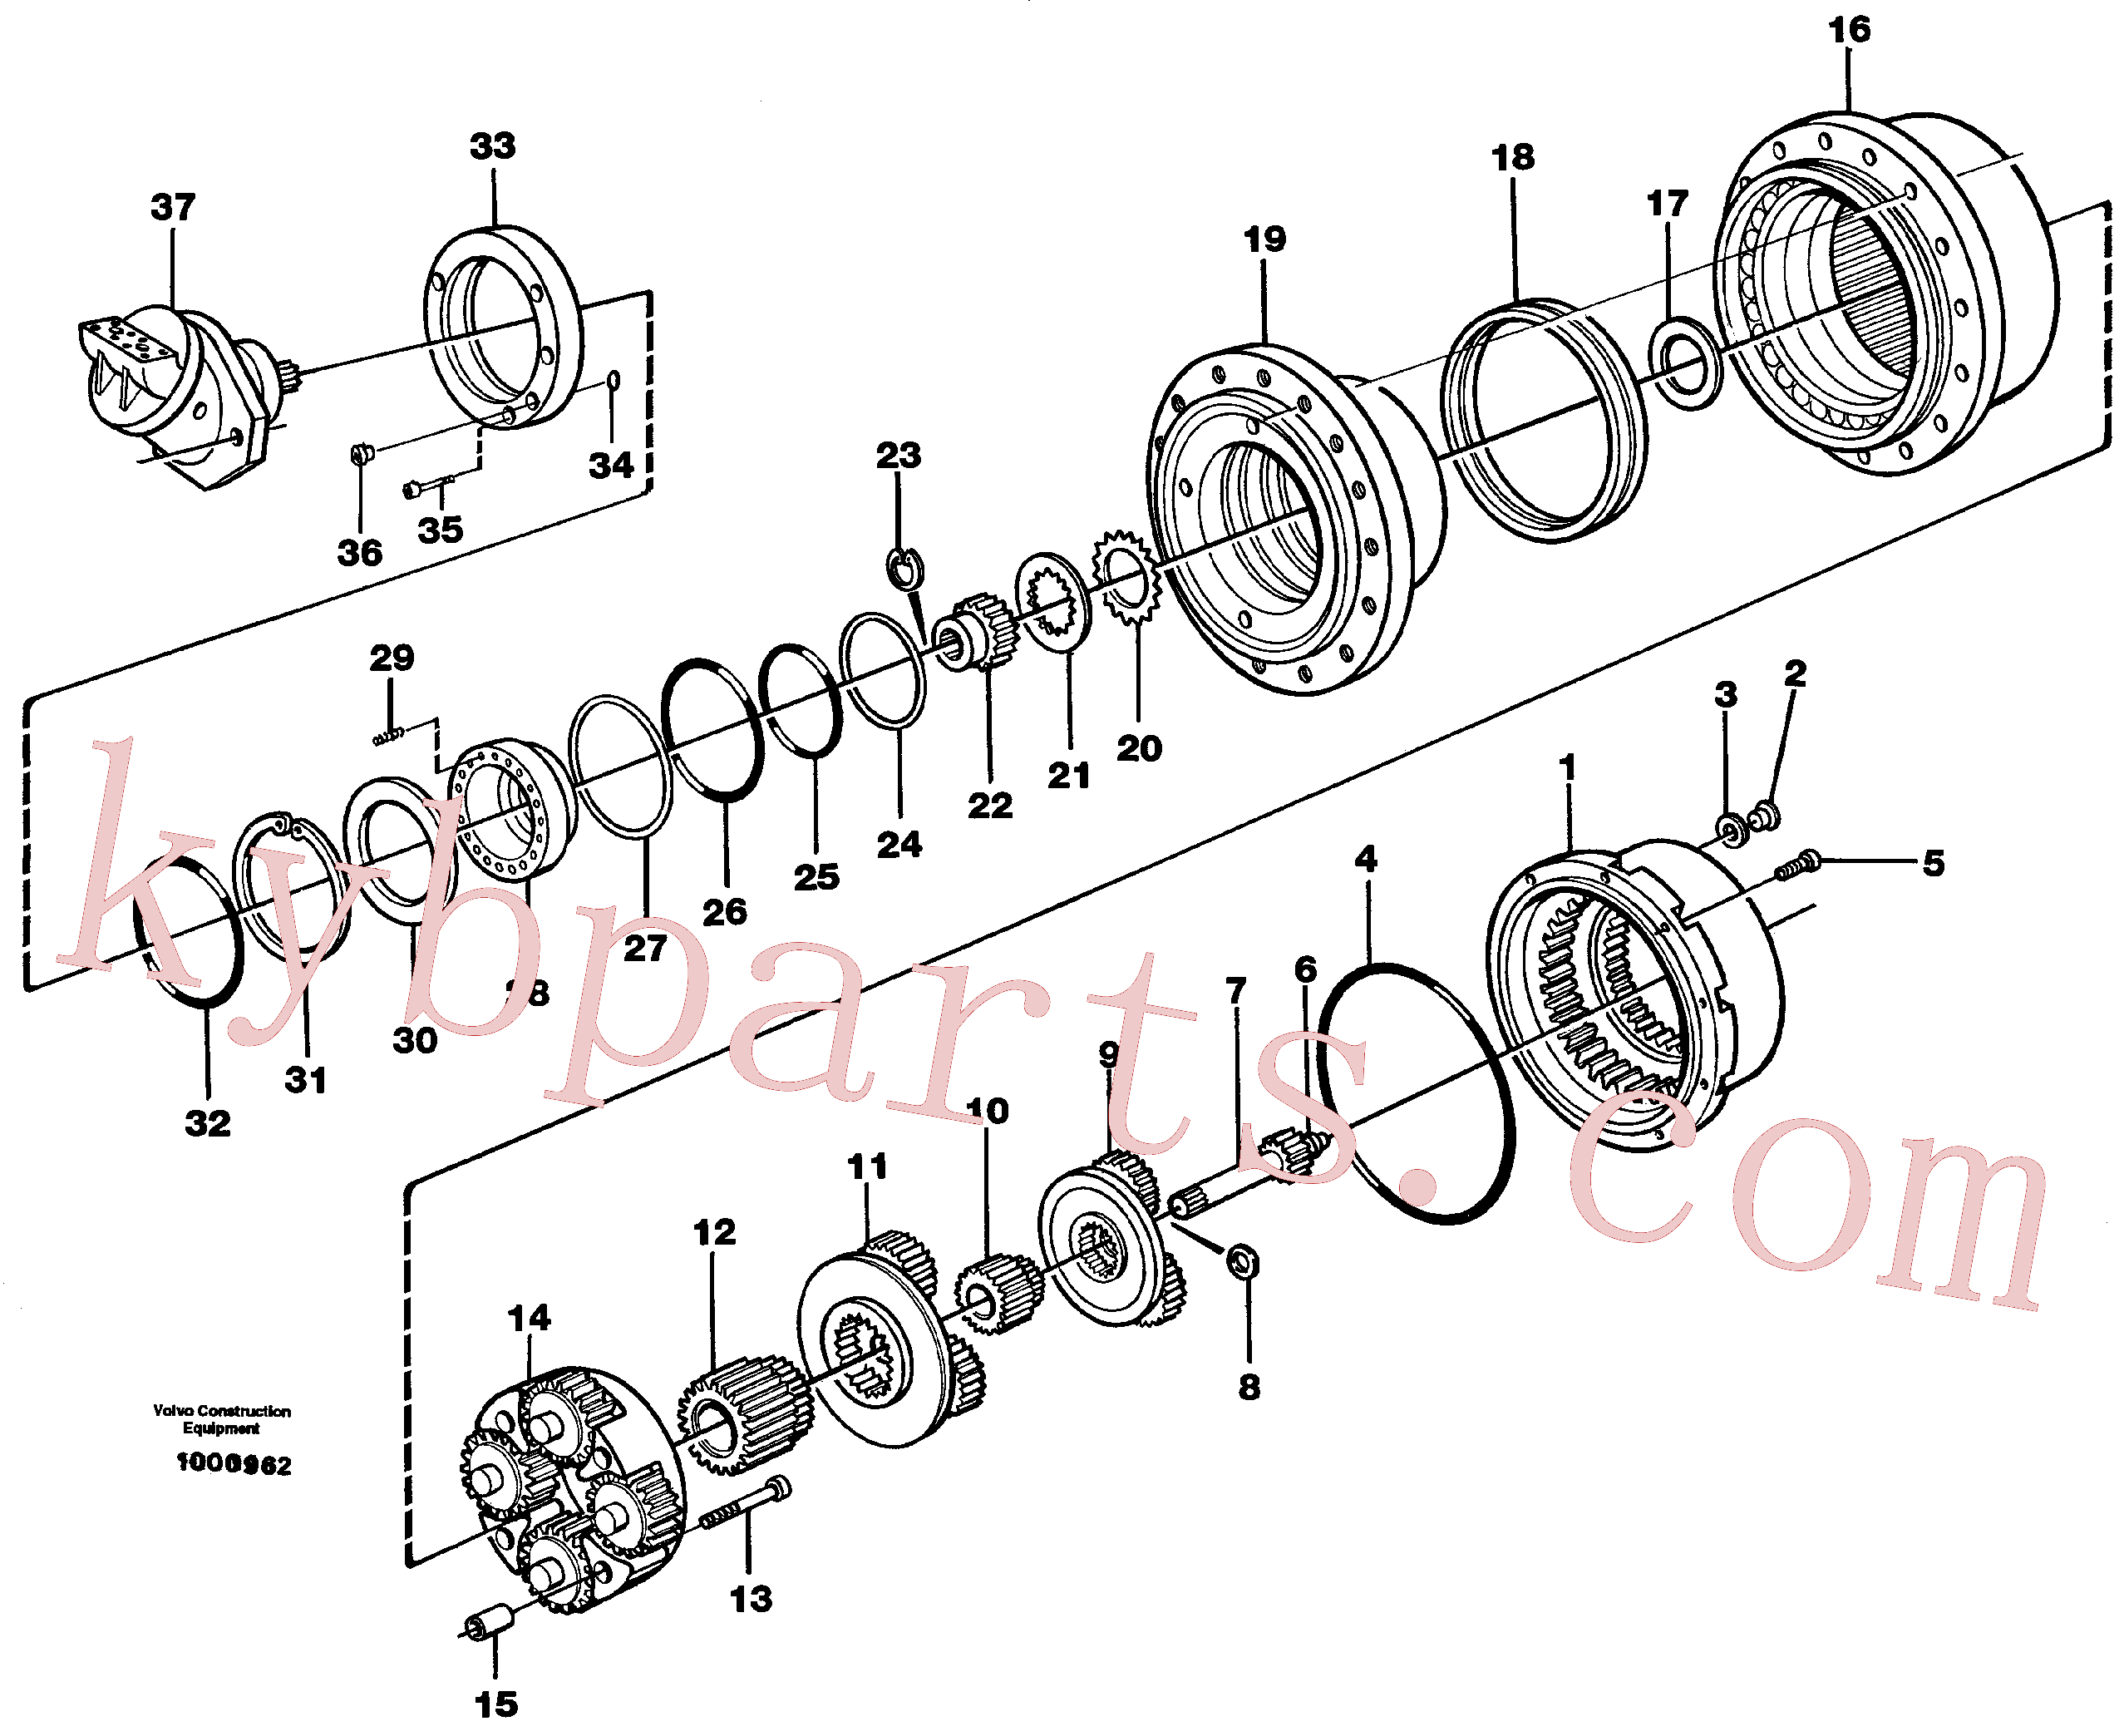 SA8230-22120 for Volvo Planetary gear, travel(1000962 assembly)